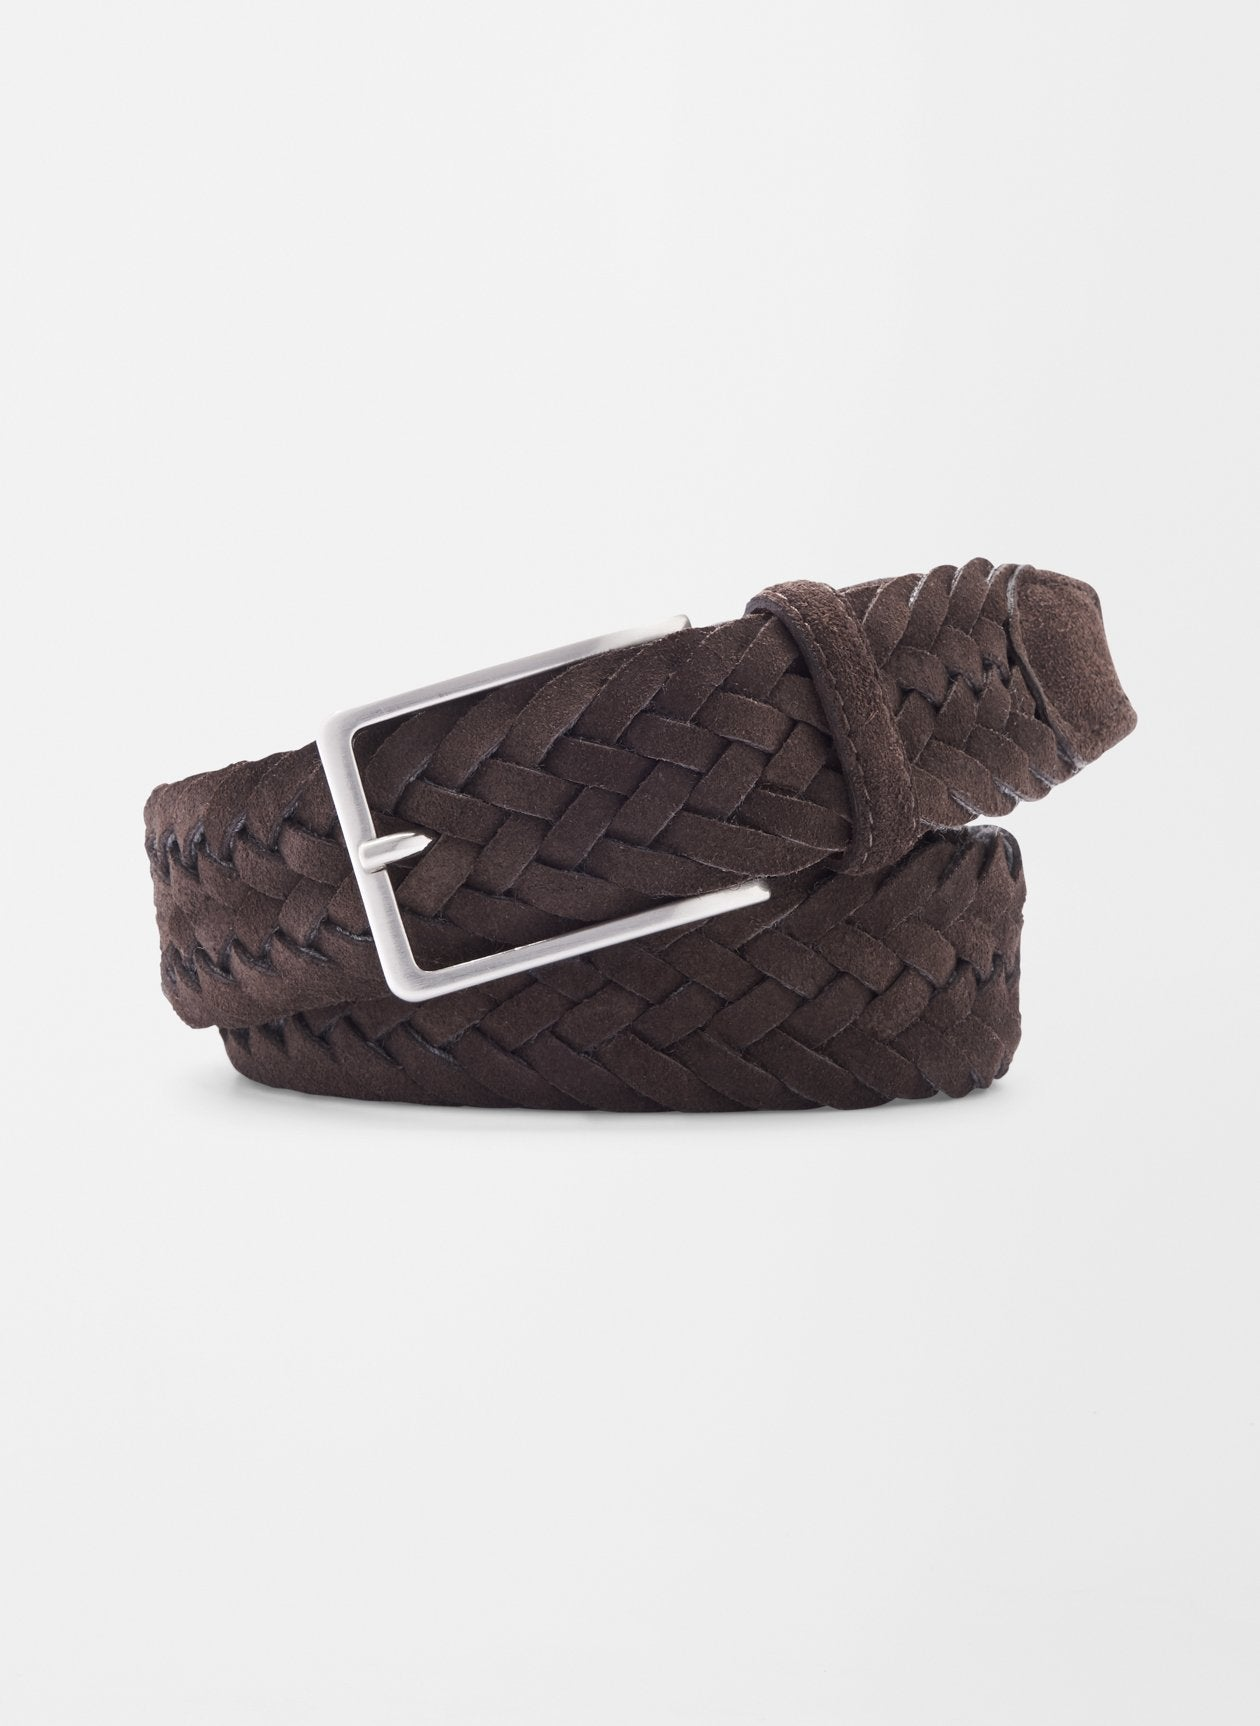 PETER MILLAR Men's Belts Peter Millar Blue Ridge Leather And Wool Braided Belt || David's